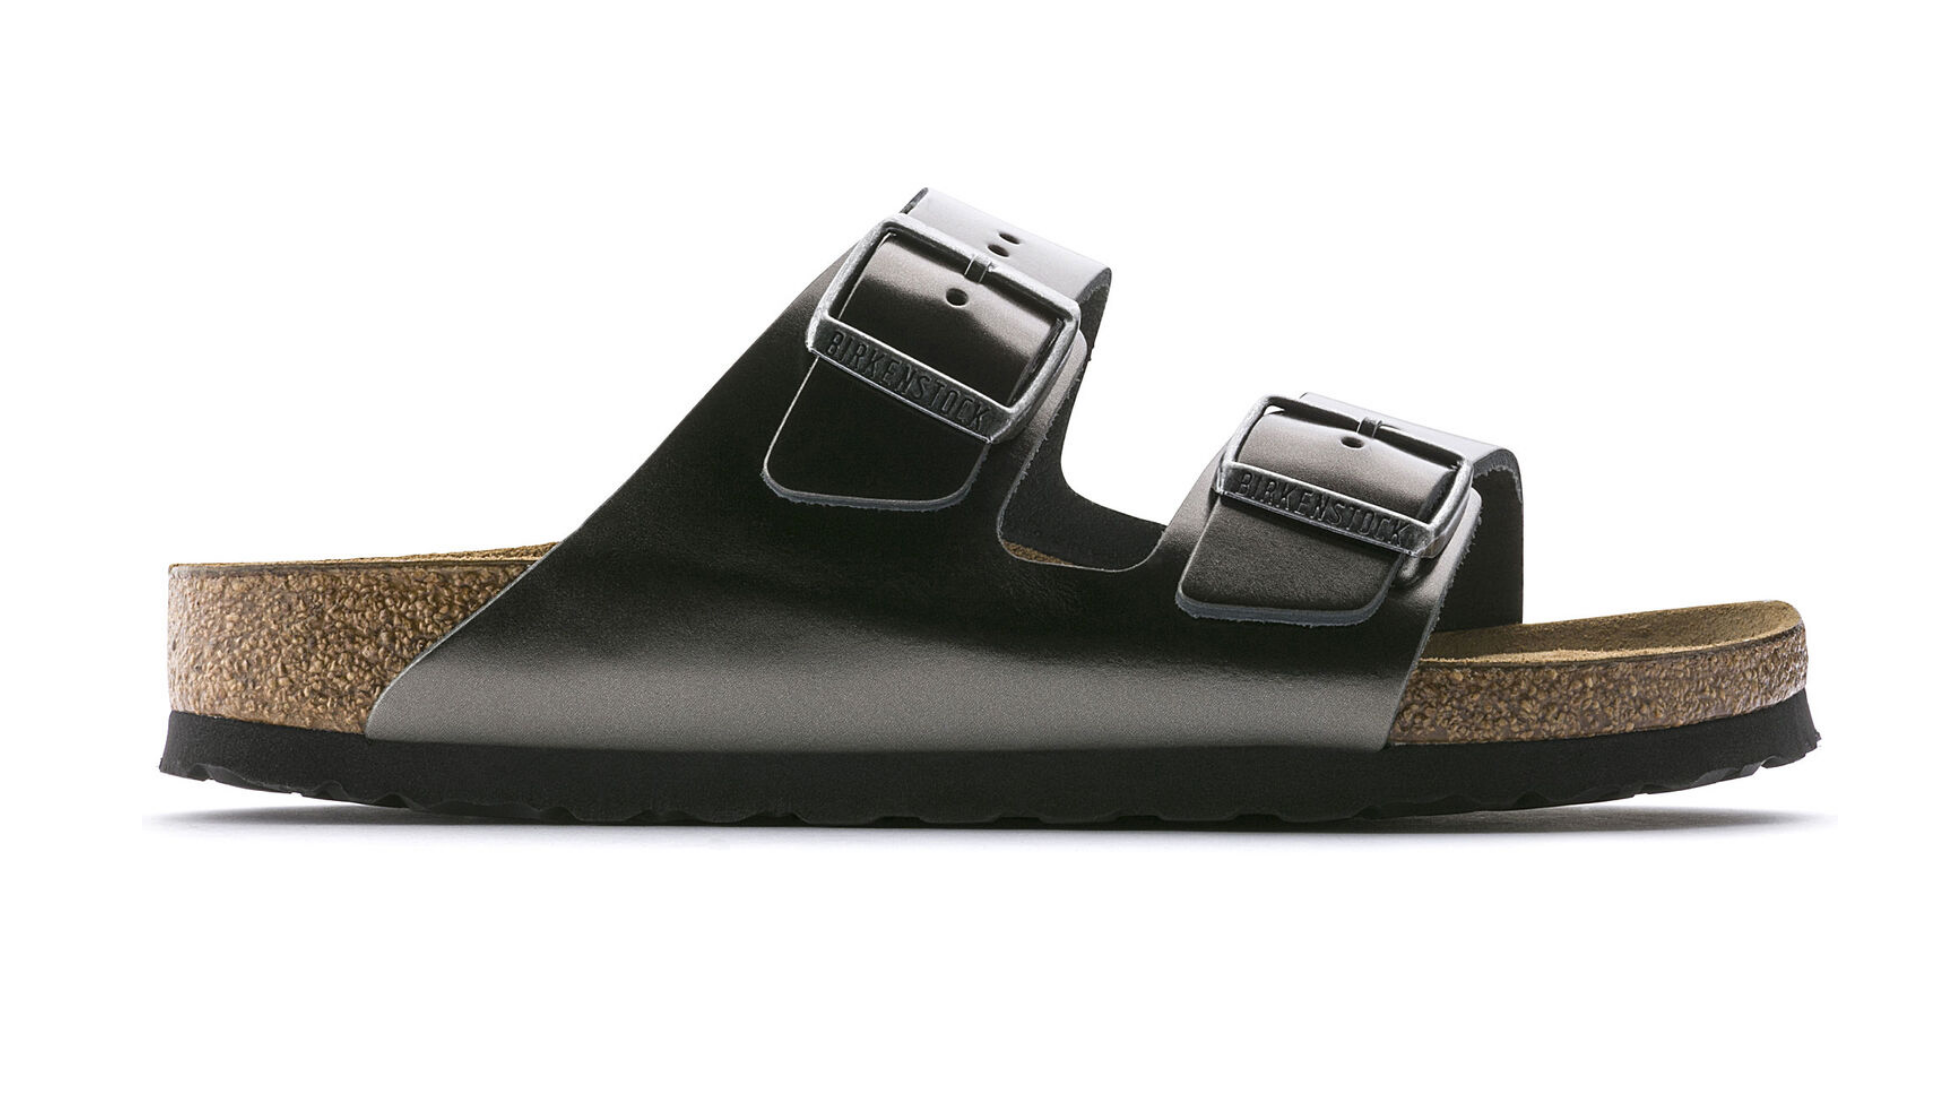 Arizona Soft Footbed in Metallic Anthracite-5